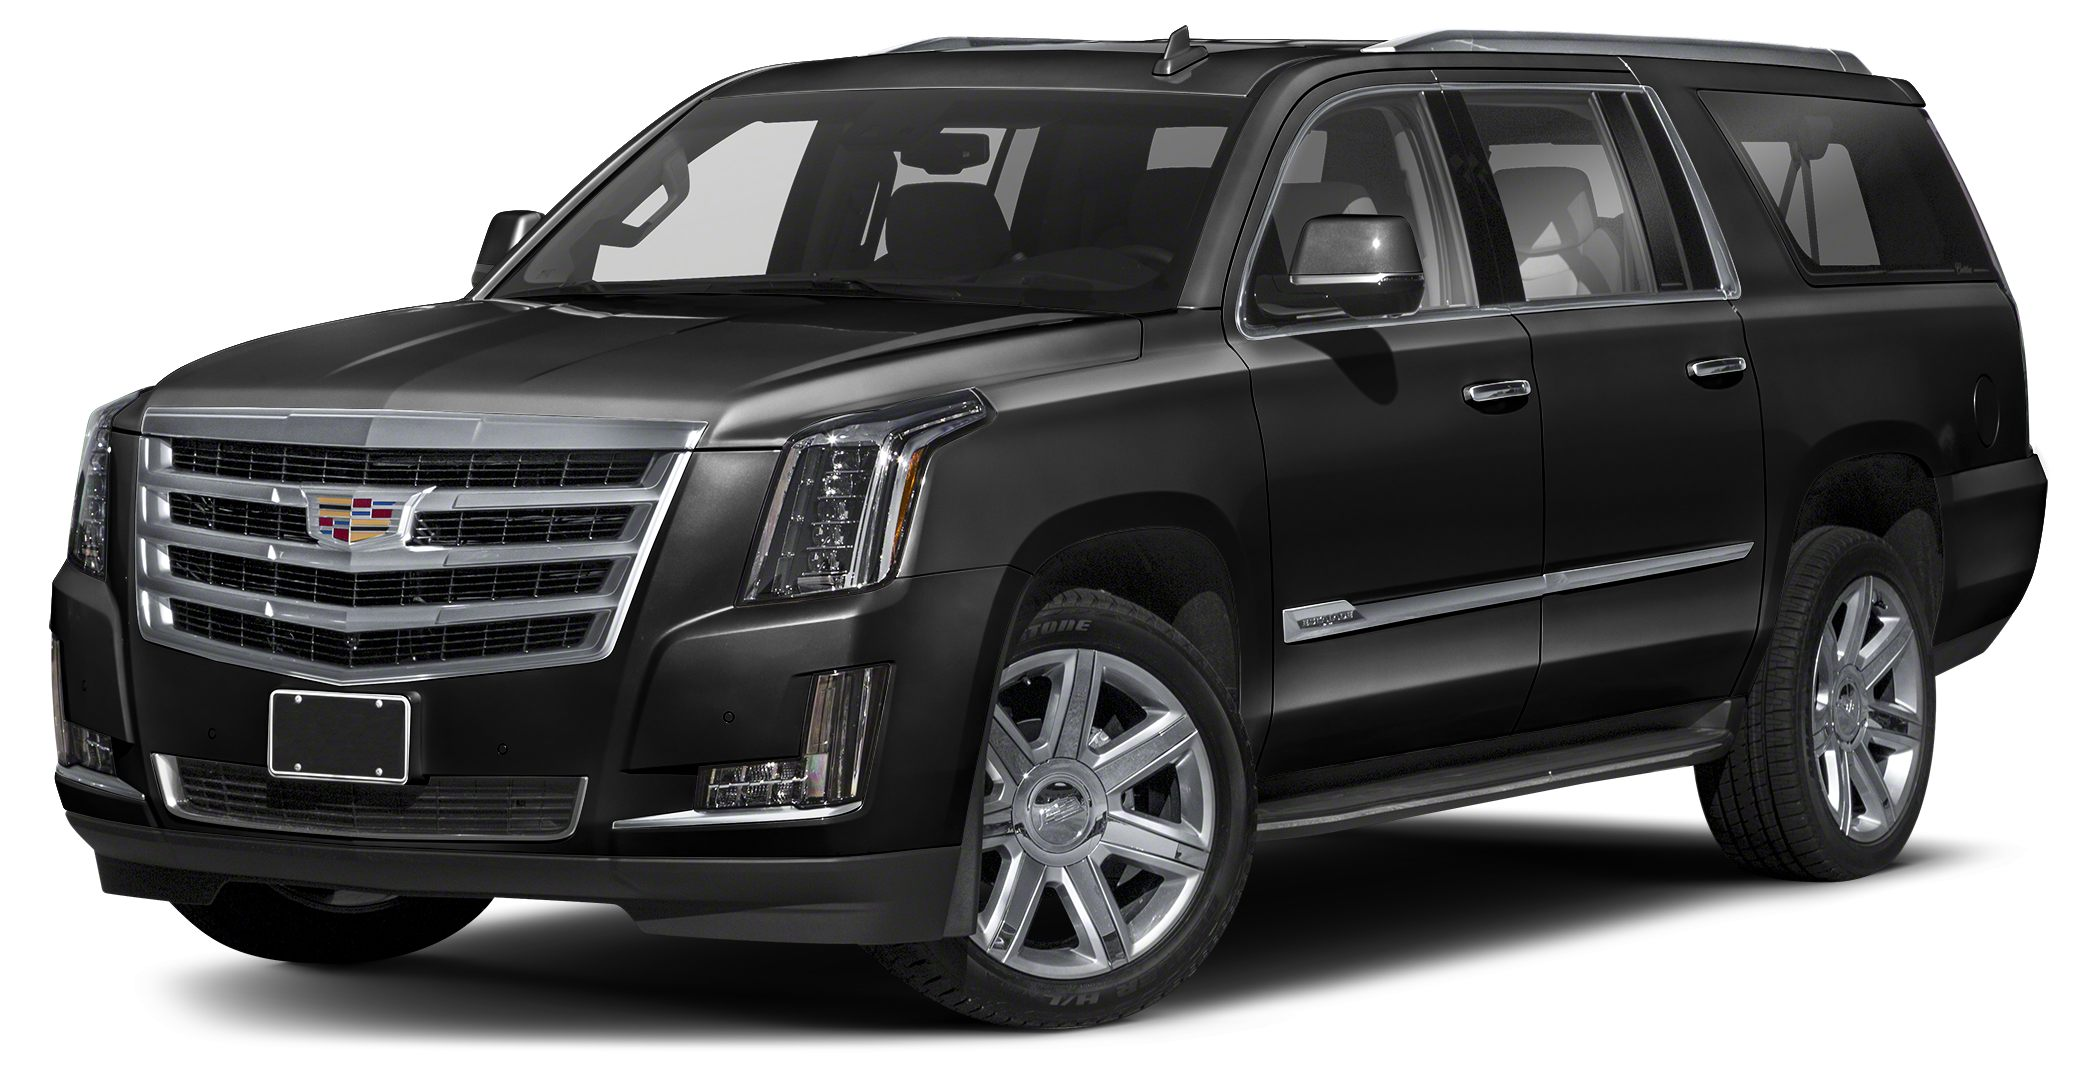 2016 Cadillac Escalade ESV Luxury Collection 2 YEARS MAINTENANCE INCLUDED WITH EVERY VEHICLE PURCH